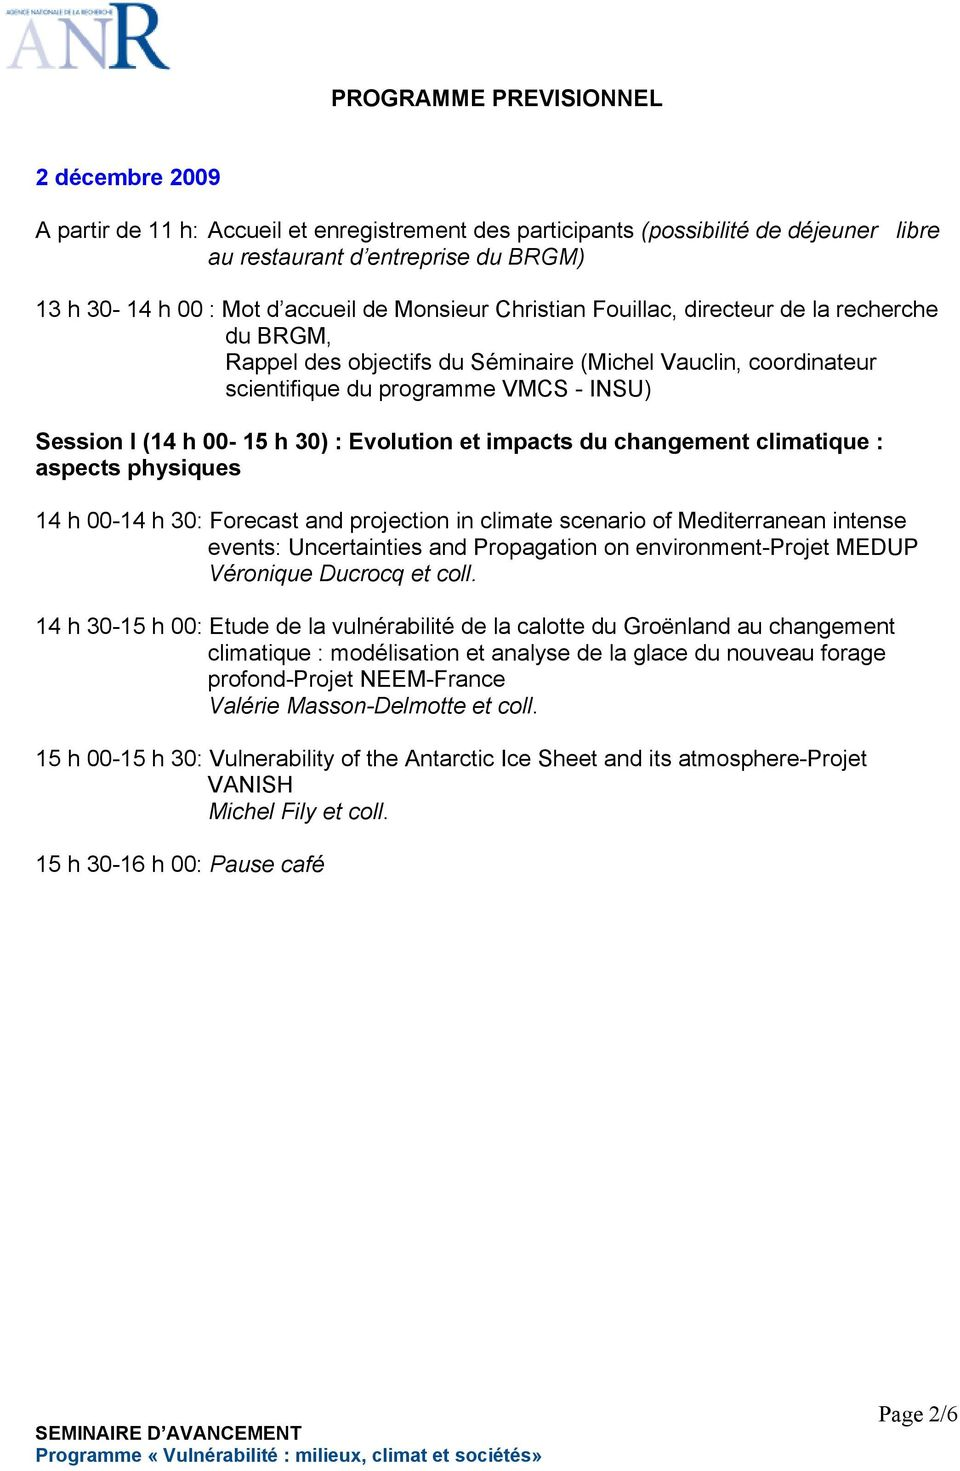 Evolution et impacts du changement climatique : aspects physiques 14 h 00-14 h 30: Forecast and projection in climate scenario of Mediterranean intense events: Uncertainties and Propagation on